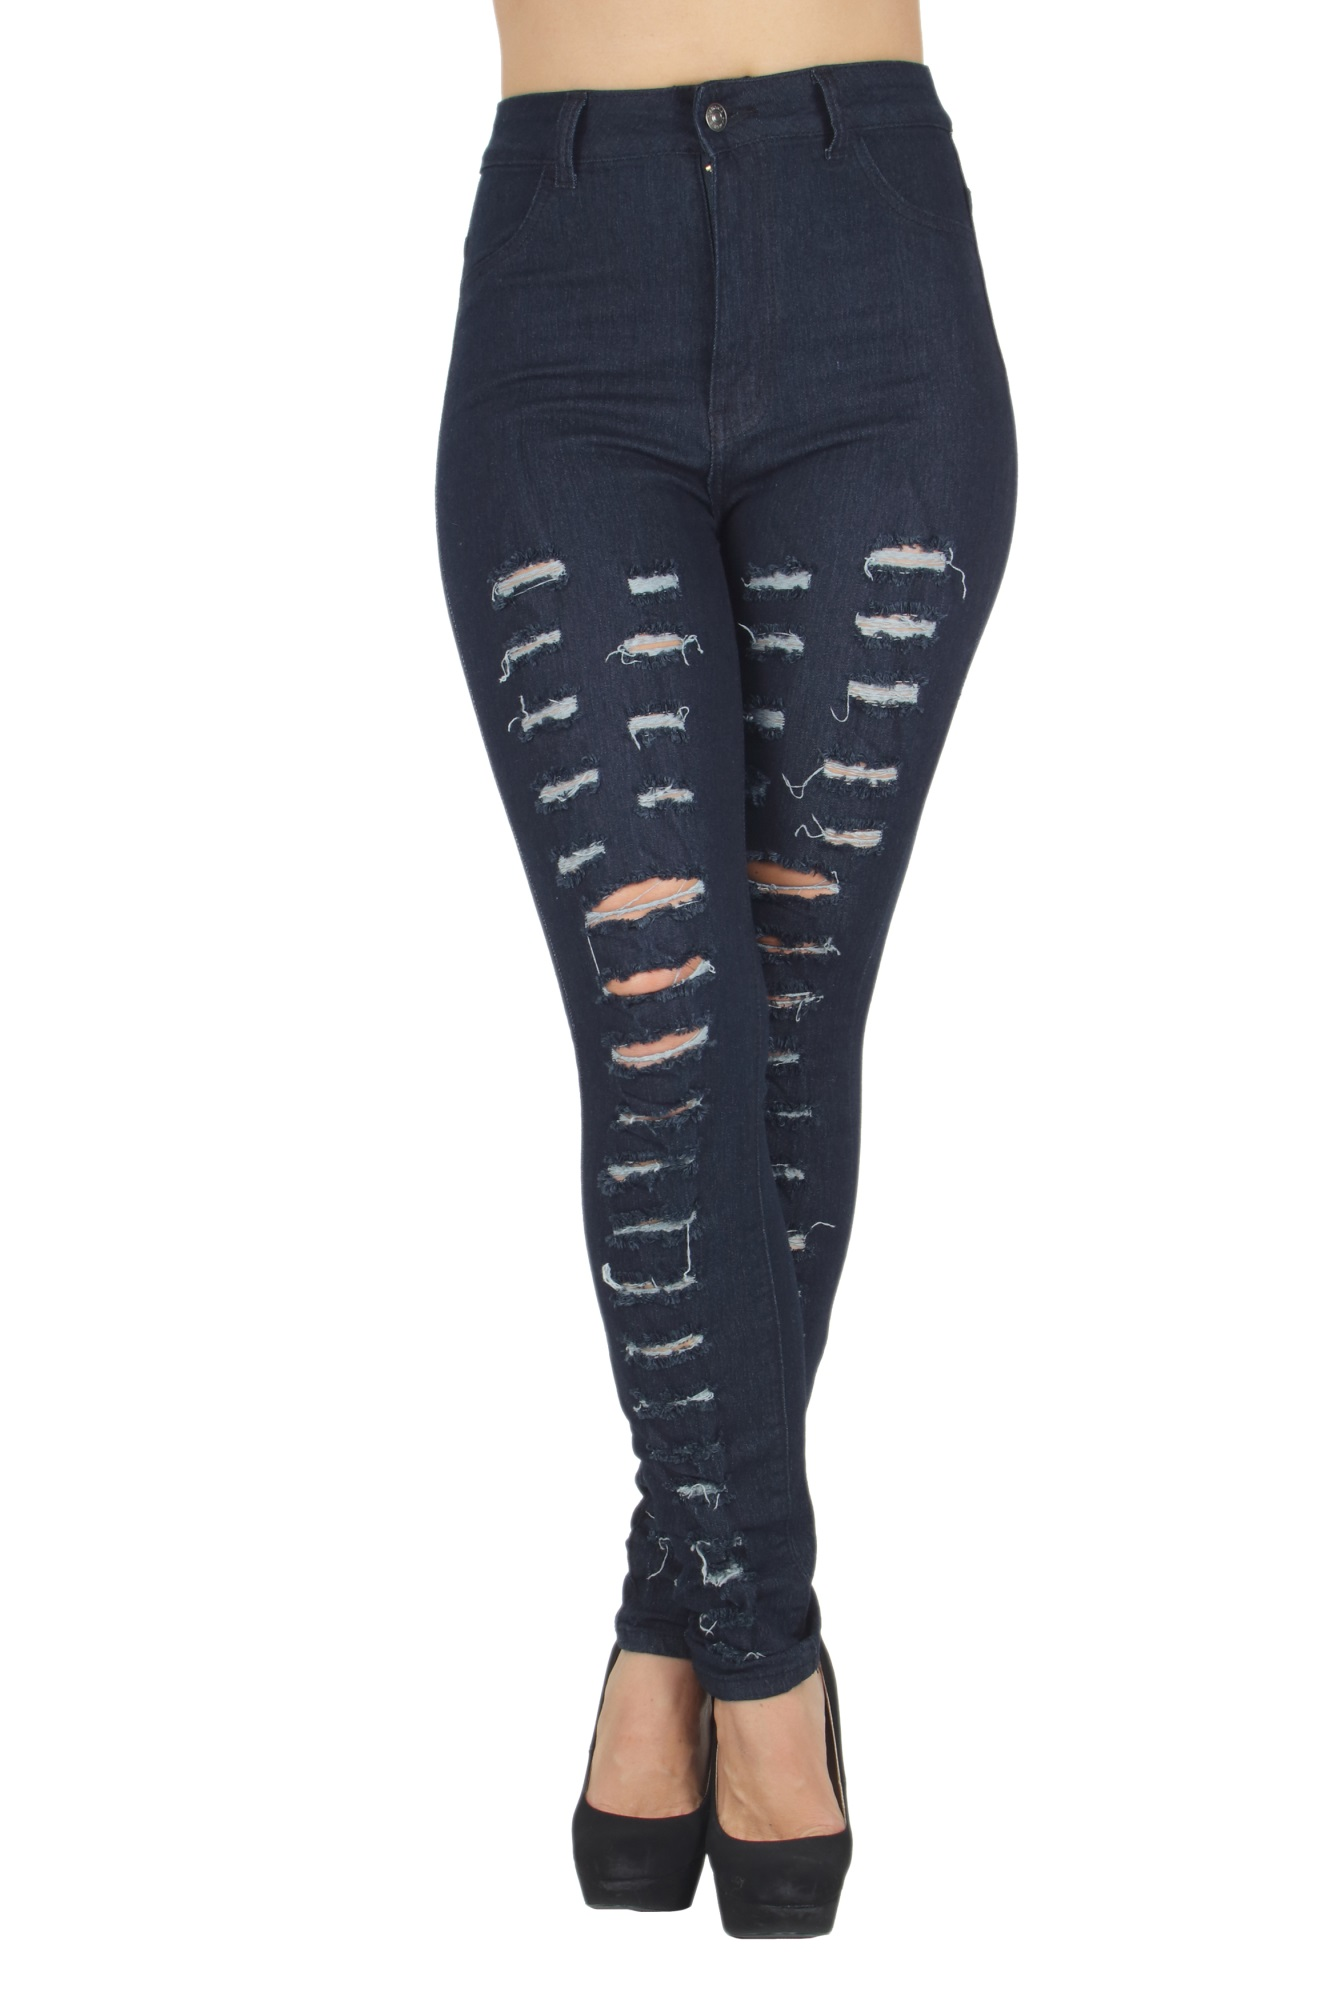 N520B-R - Butt Lifting, Destroyed, Ripped, High Waist, Sexy Skinny Jeans